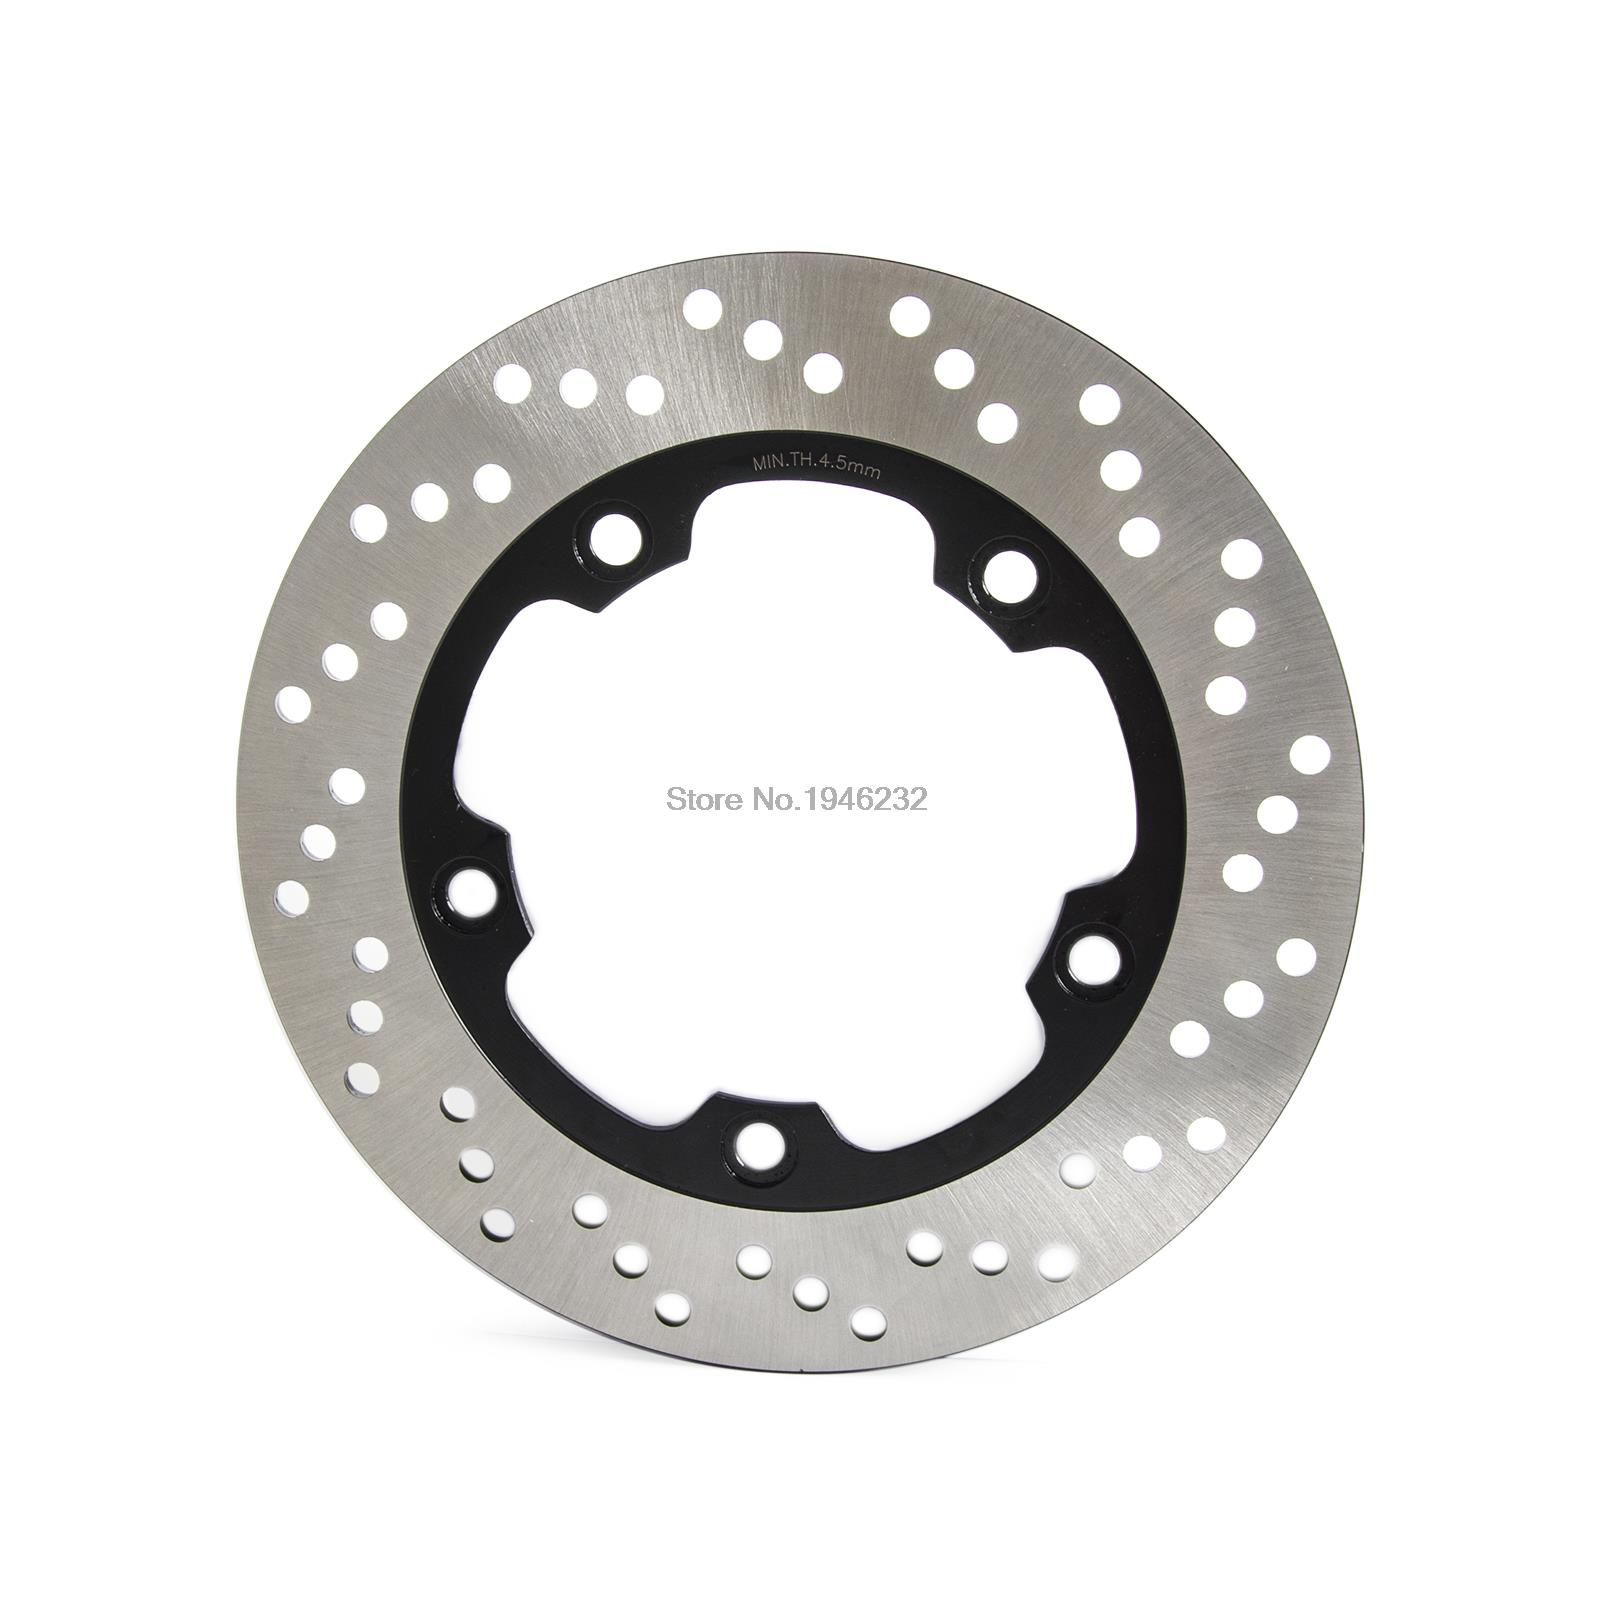 New Motorcycle Rear Rotor Brake Disc For Suzuki Bandit 1200 1250 GSF 650 750 GSR 600 GSX 650 Inazuma 250Z (GW250) 2012-2016 rear brake steel disc rotor for suzuki gsxr1300 gsx r 1300 gsf1200 gs 1200